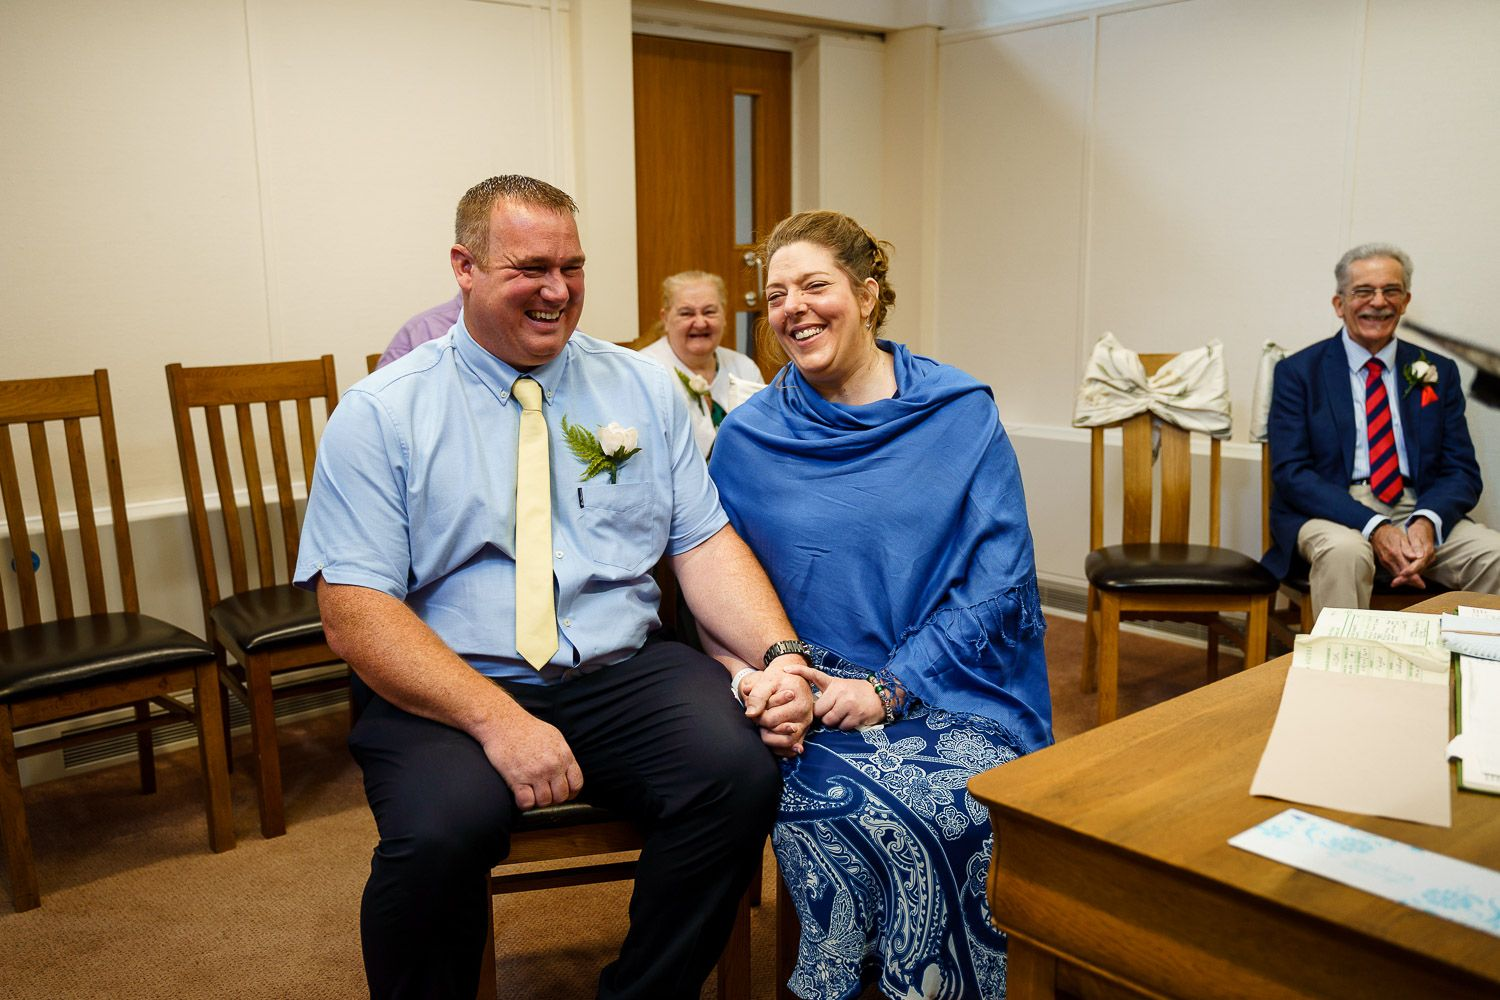 Bride and groom wearing blue at Southampton Registry Office wedding.